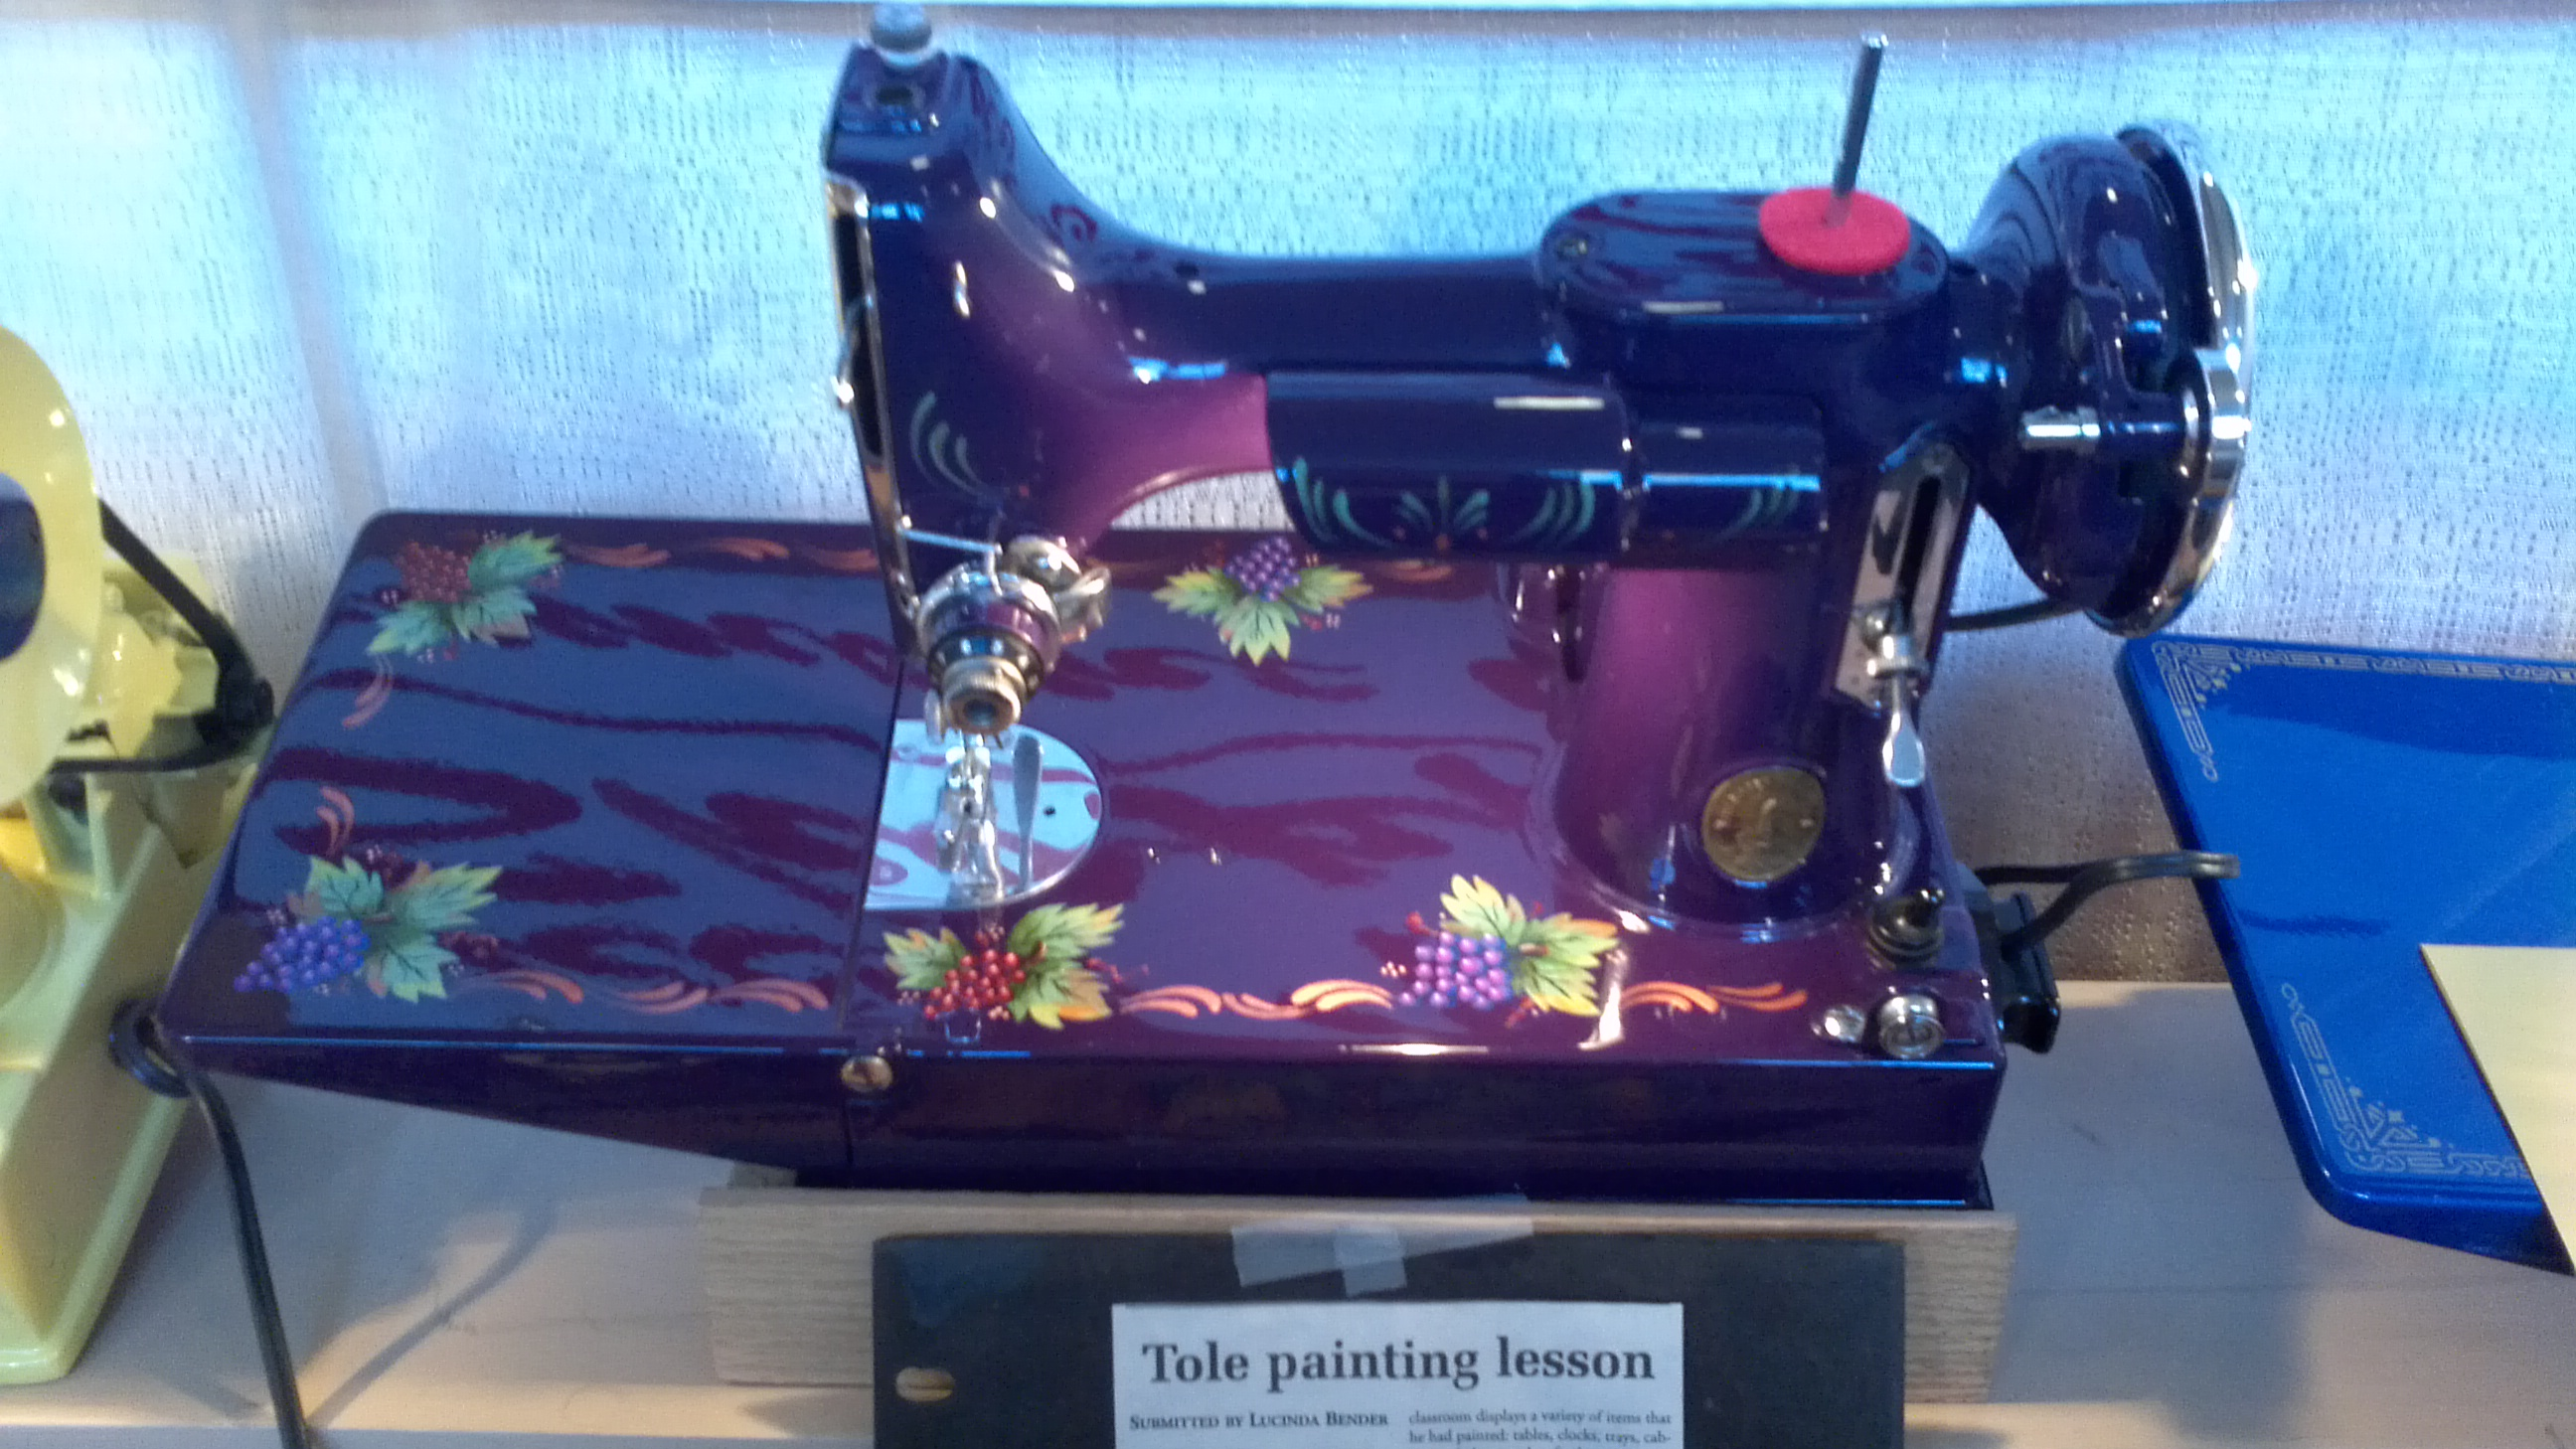 Repainting a Featherweight Sewing Machine